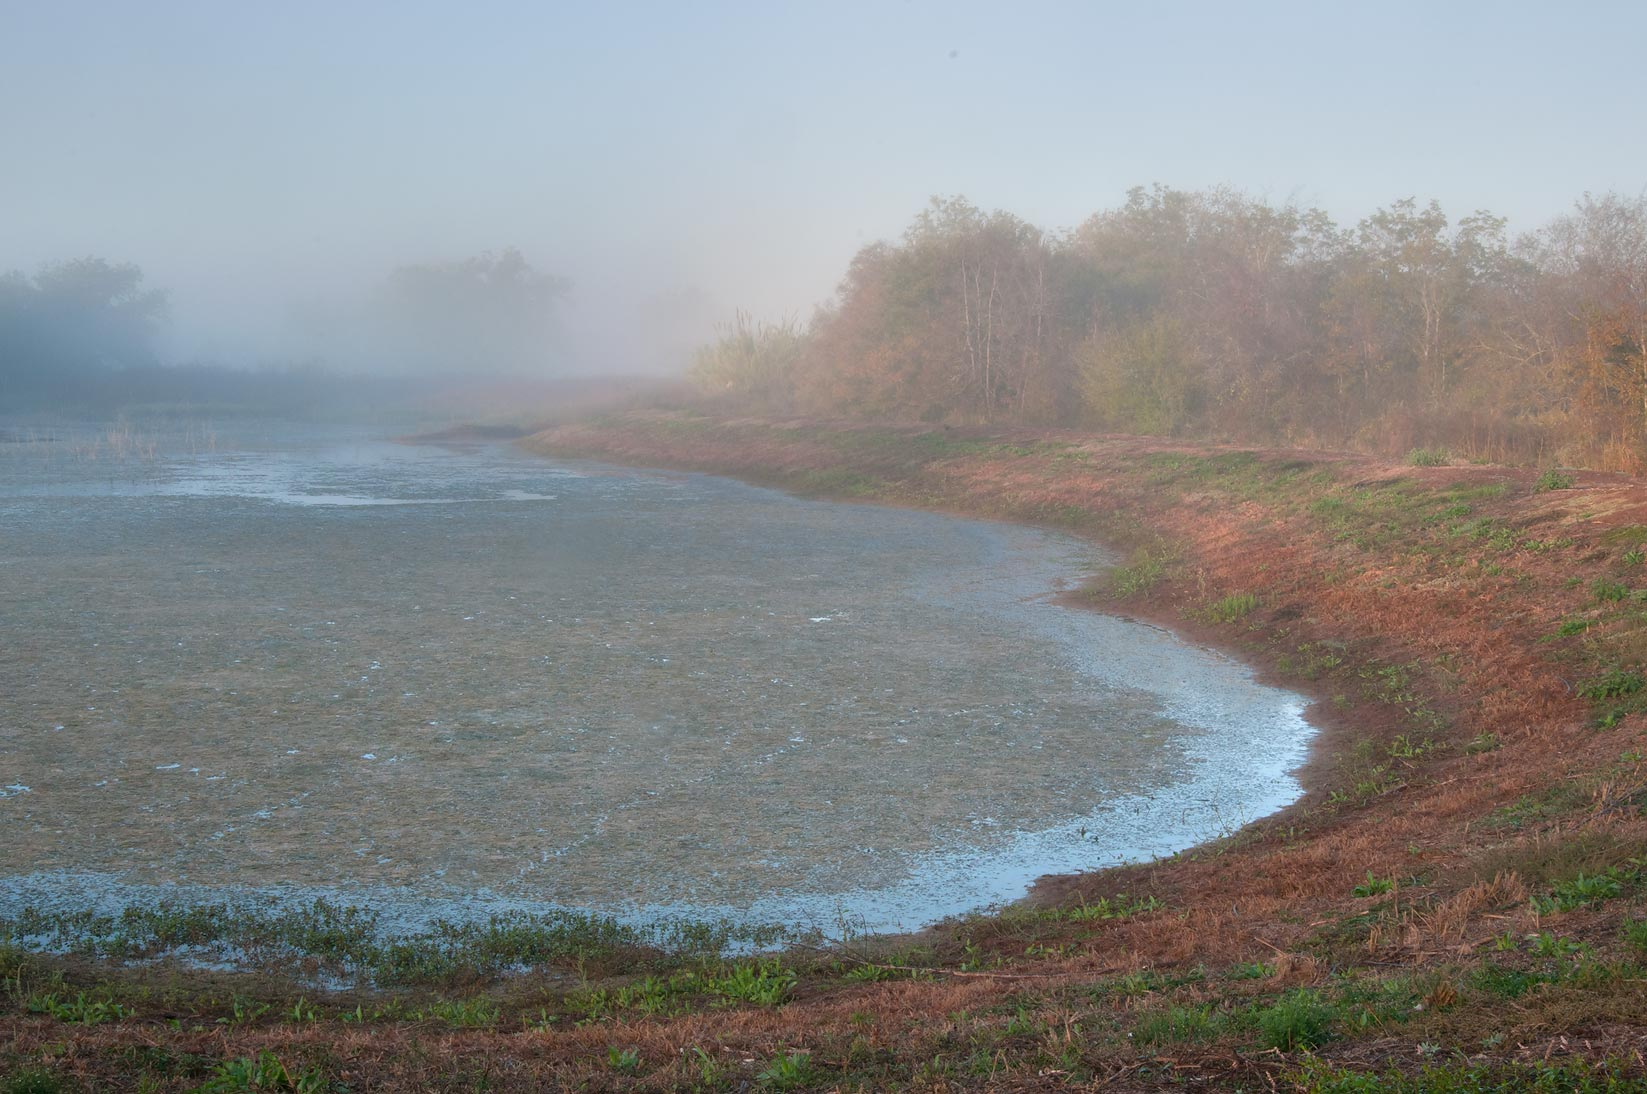 Pond with mist in Washington-on-the-Brazos State Historic Site. Washington, Texas